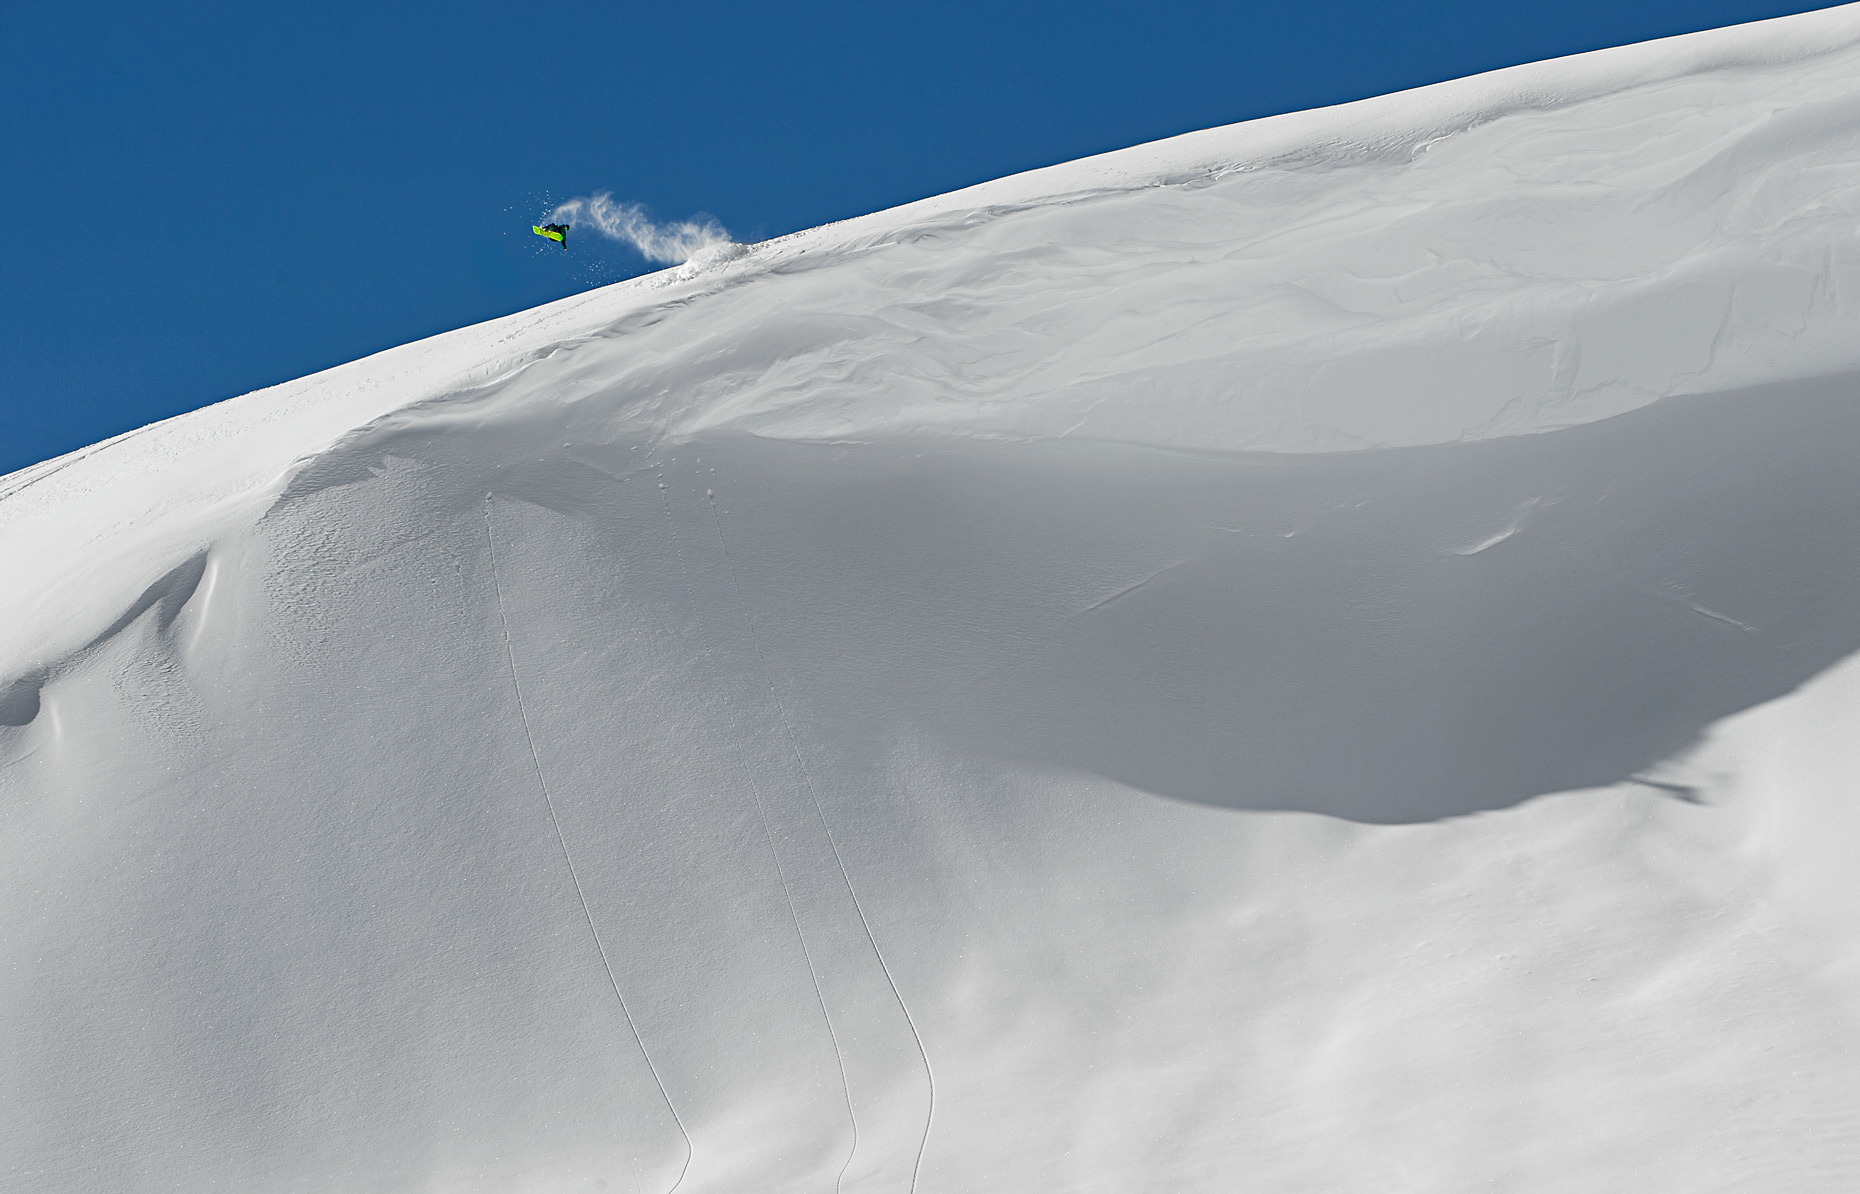 Beau_Bishop_BS_7_Whistler_backcountry_